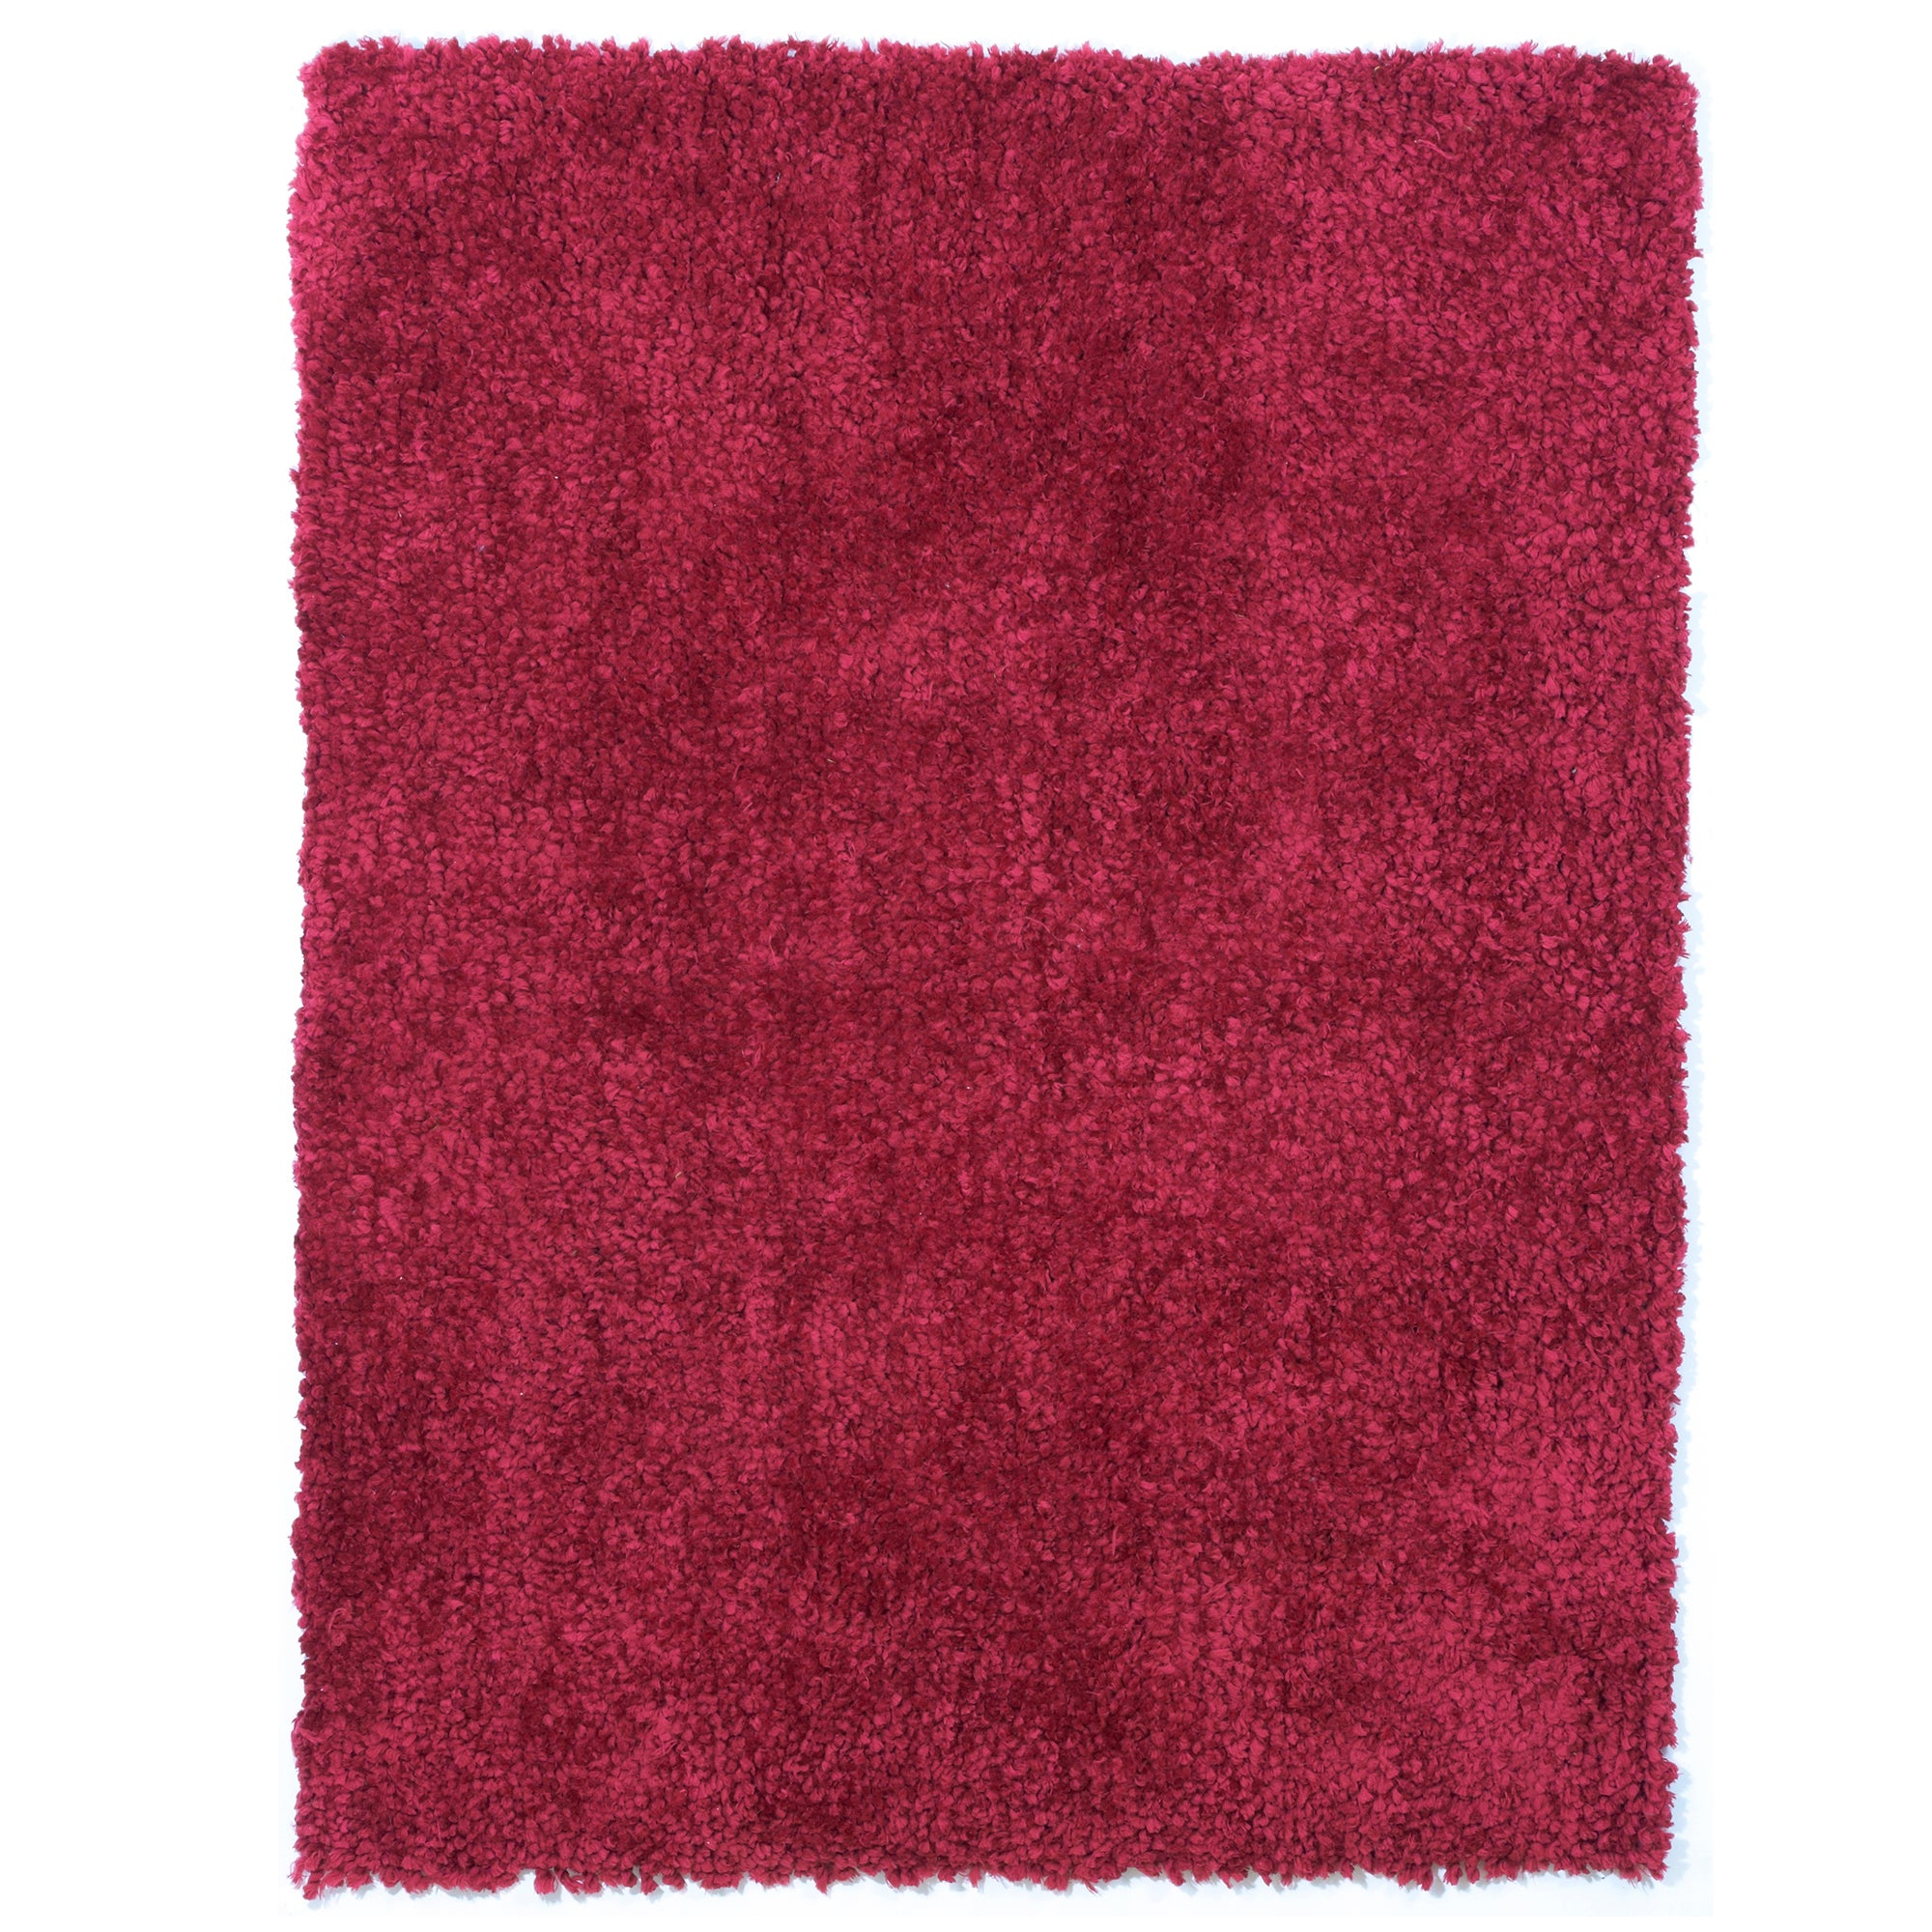 Supersoft Textured Rug